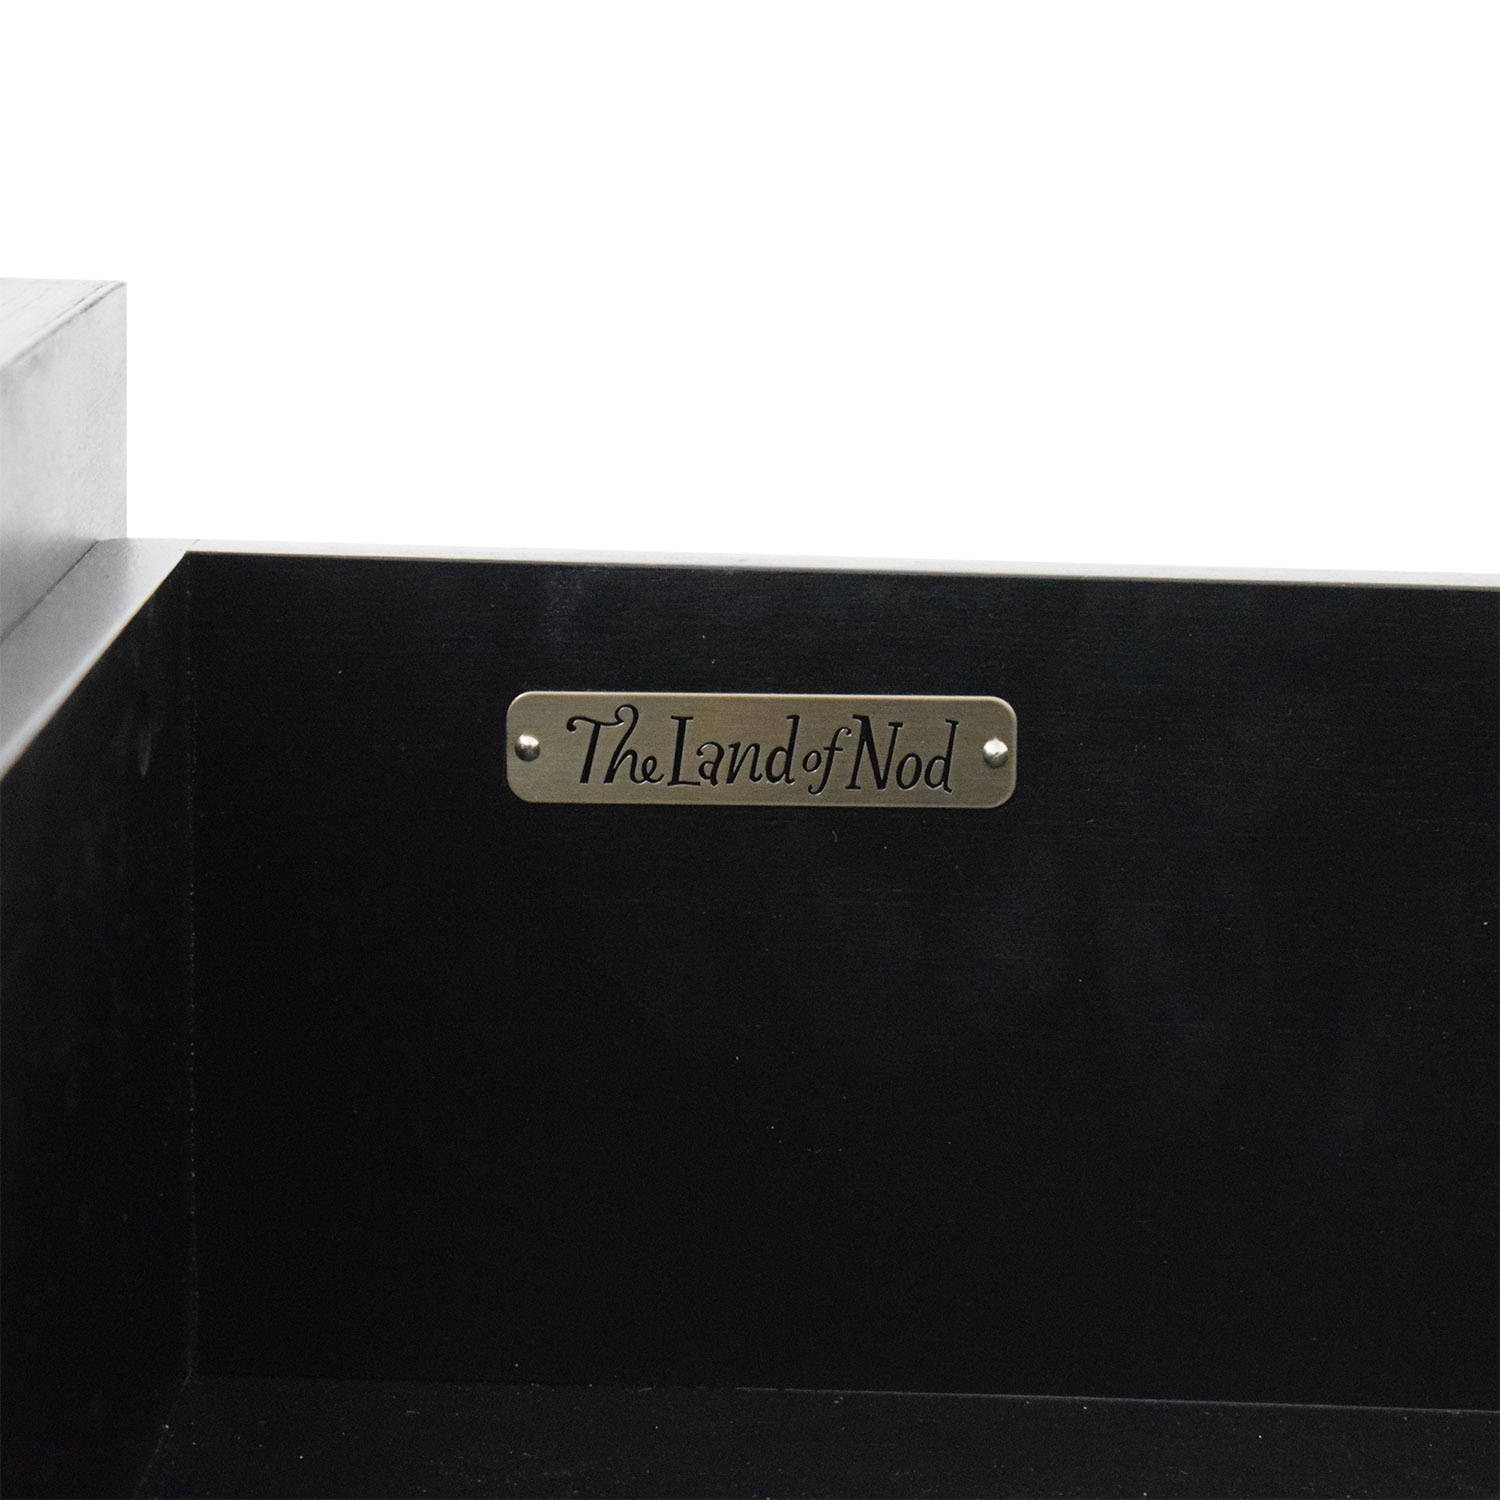 buy Crate & Barrel Credenza with Drawers Crate & Barrel